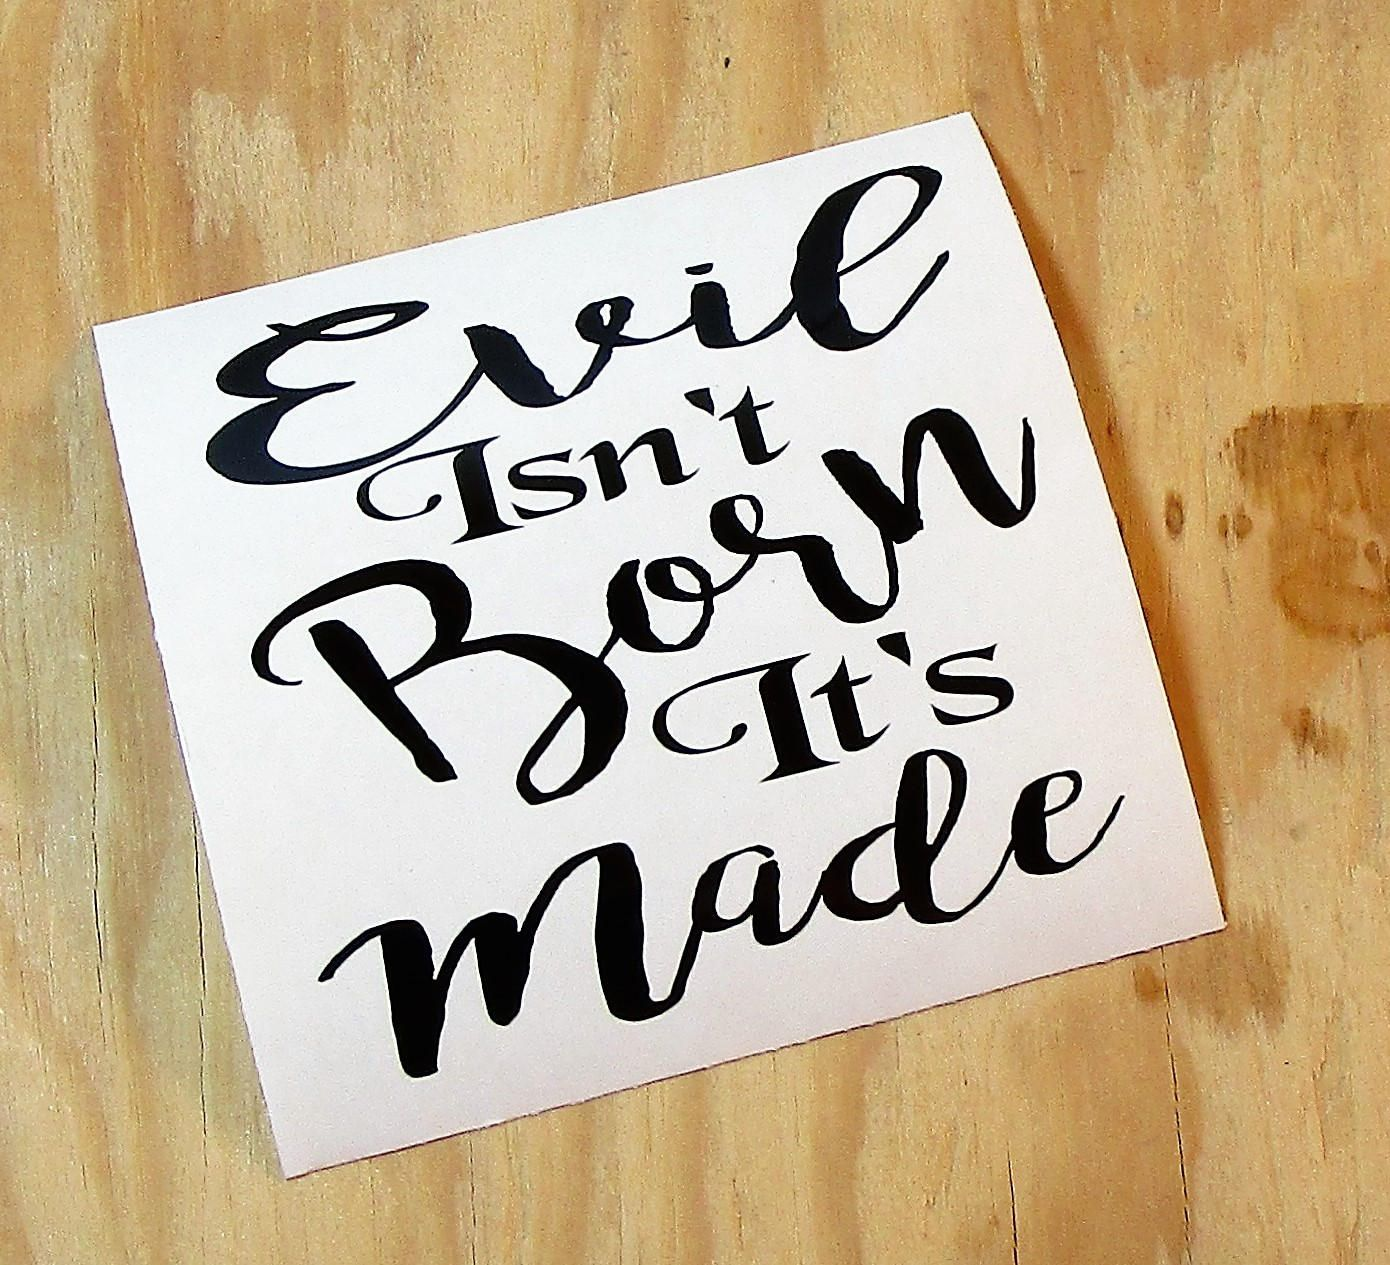 Evil Isnt Born Its Made Vinyl Decal Coffee Mug Decal Wine - How to make vinyl decals